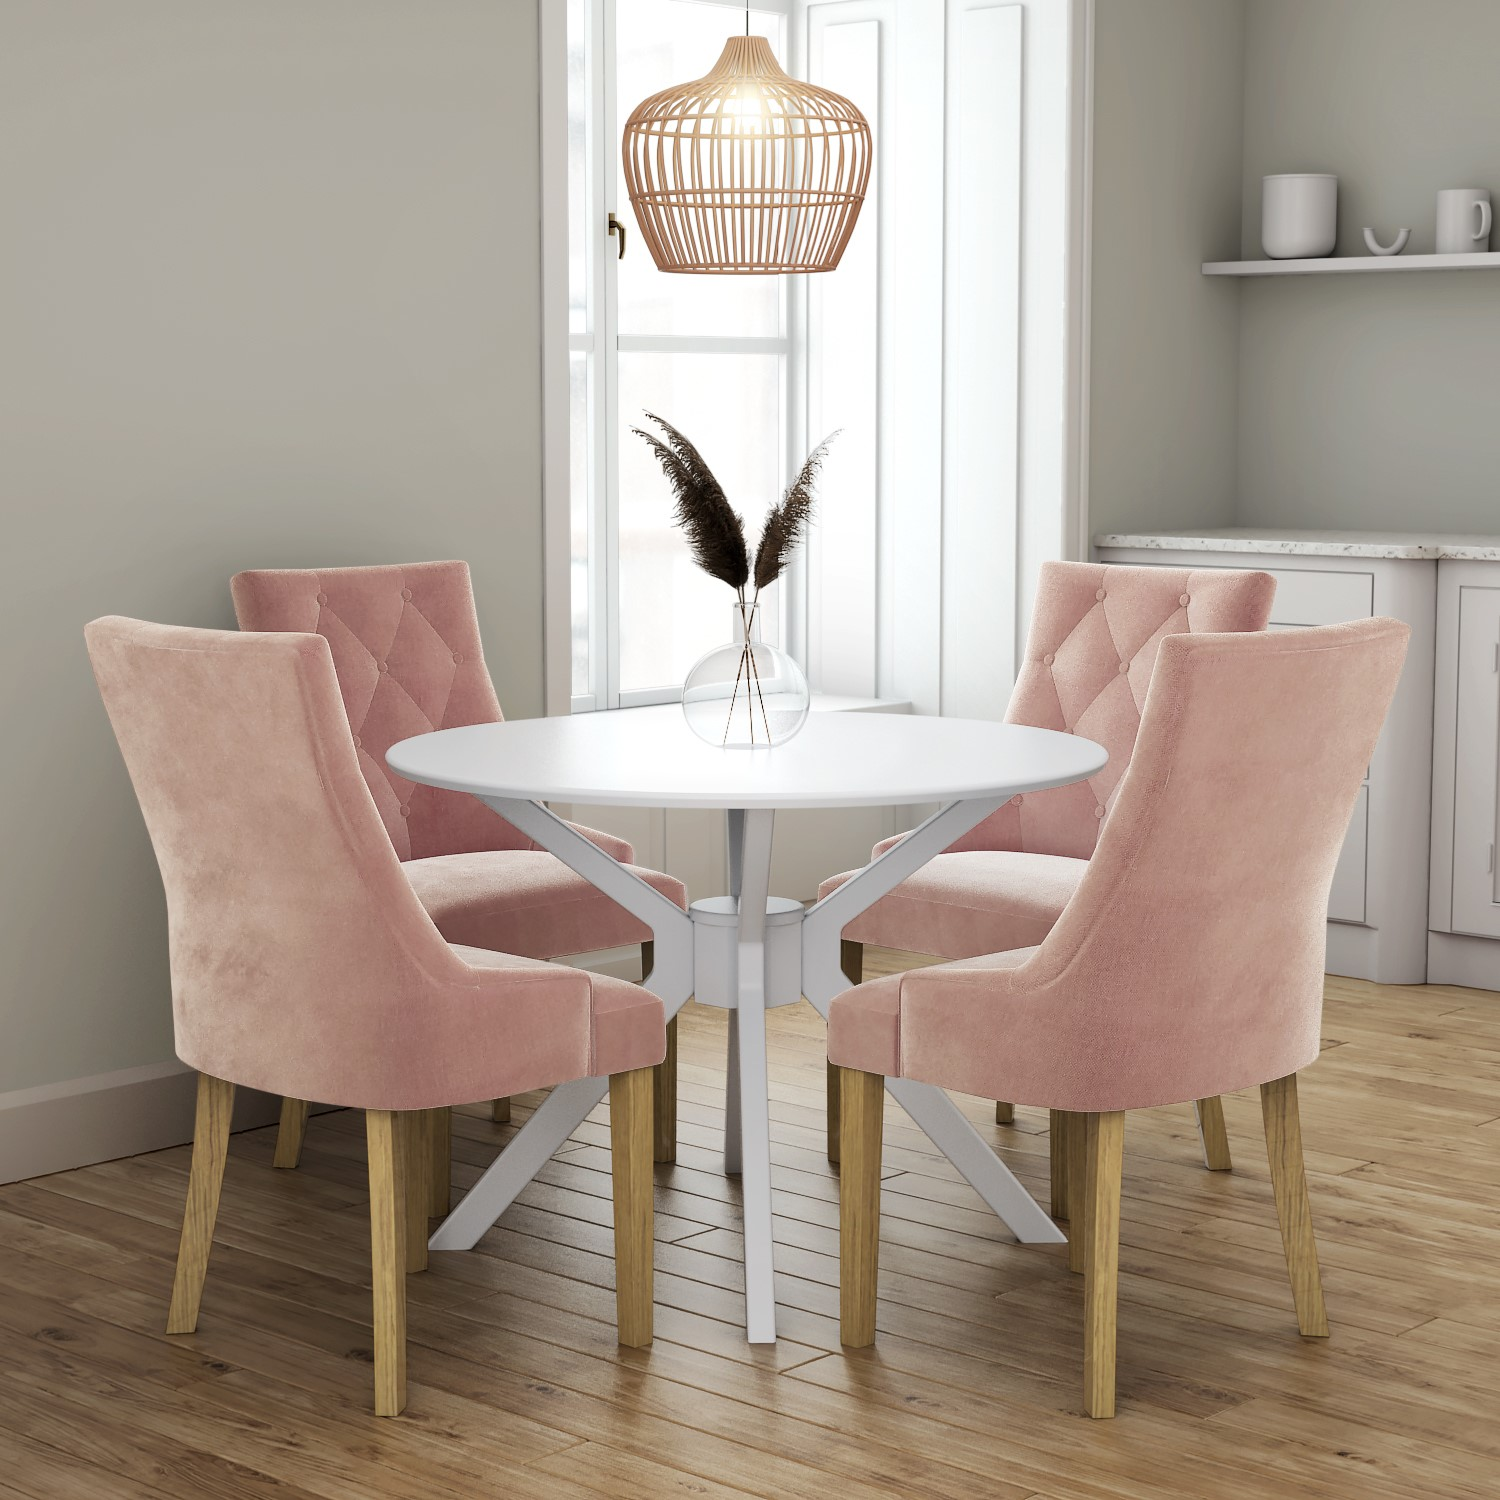 White Round Dining Table with 9 Pink Velvet Dining Chairs